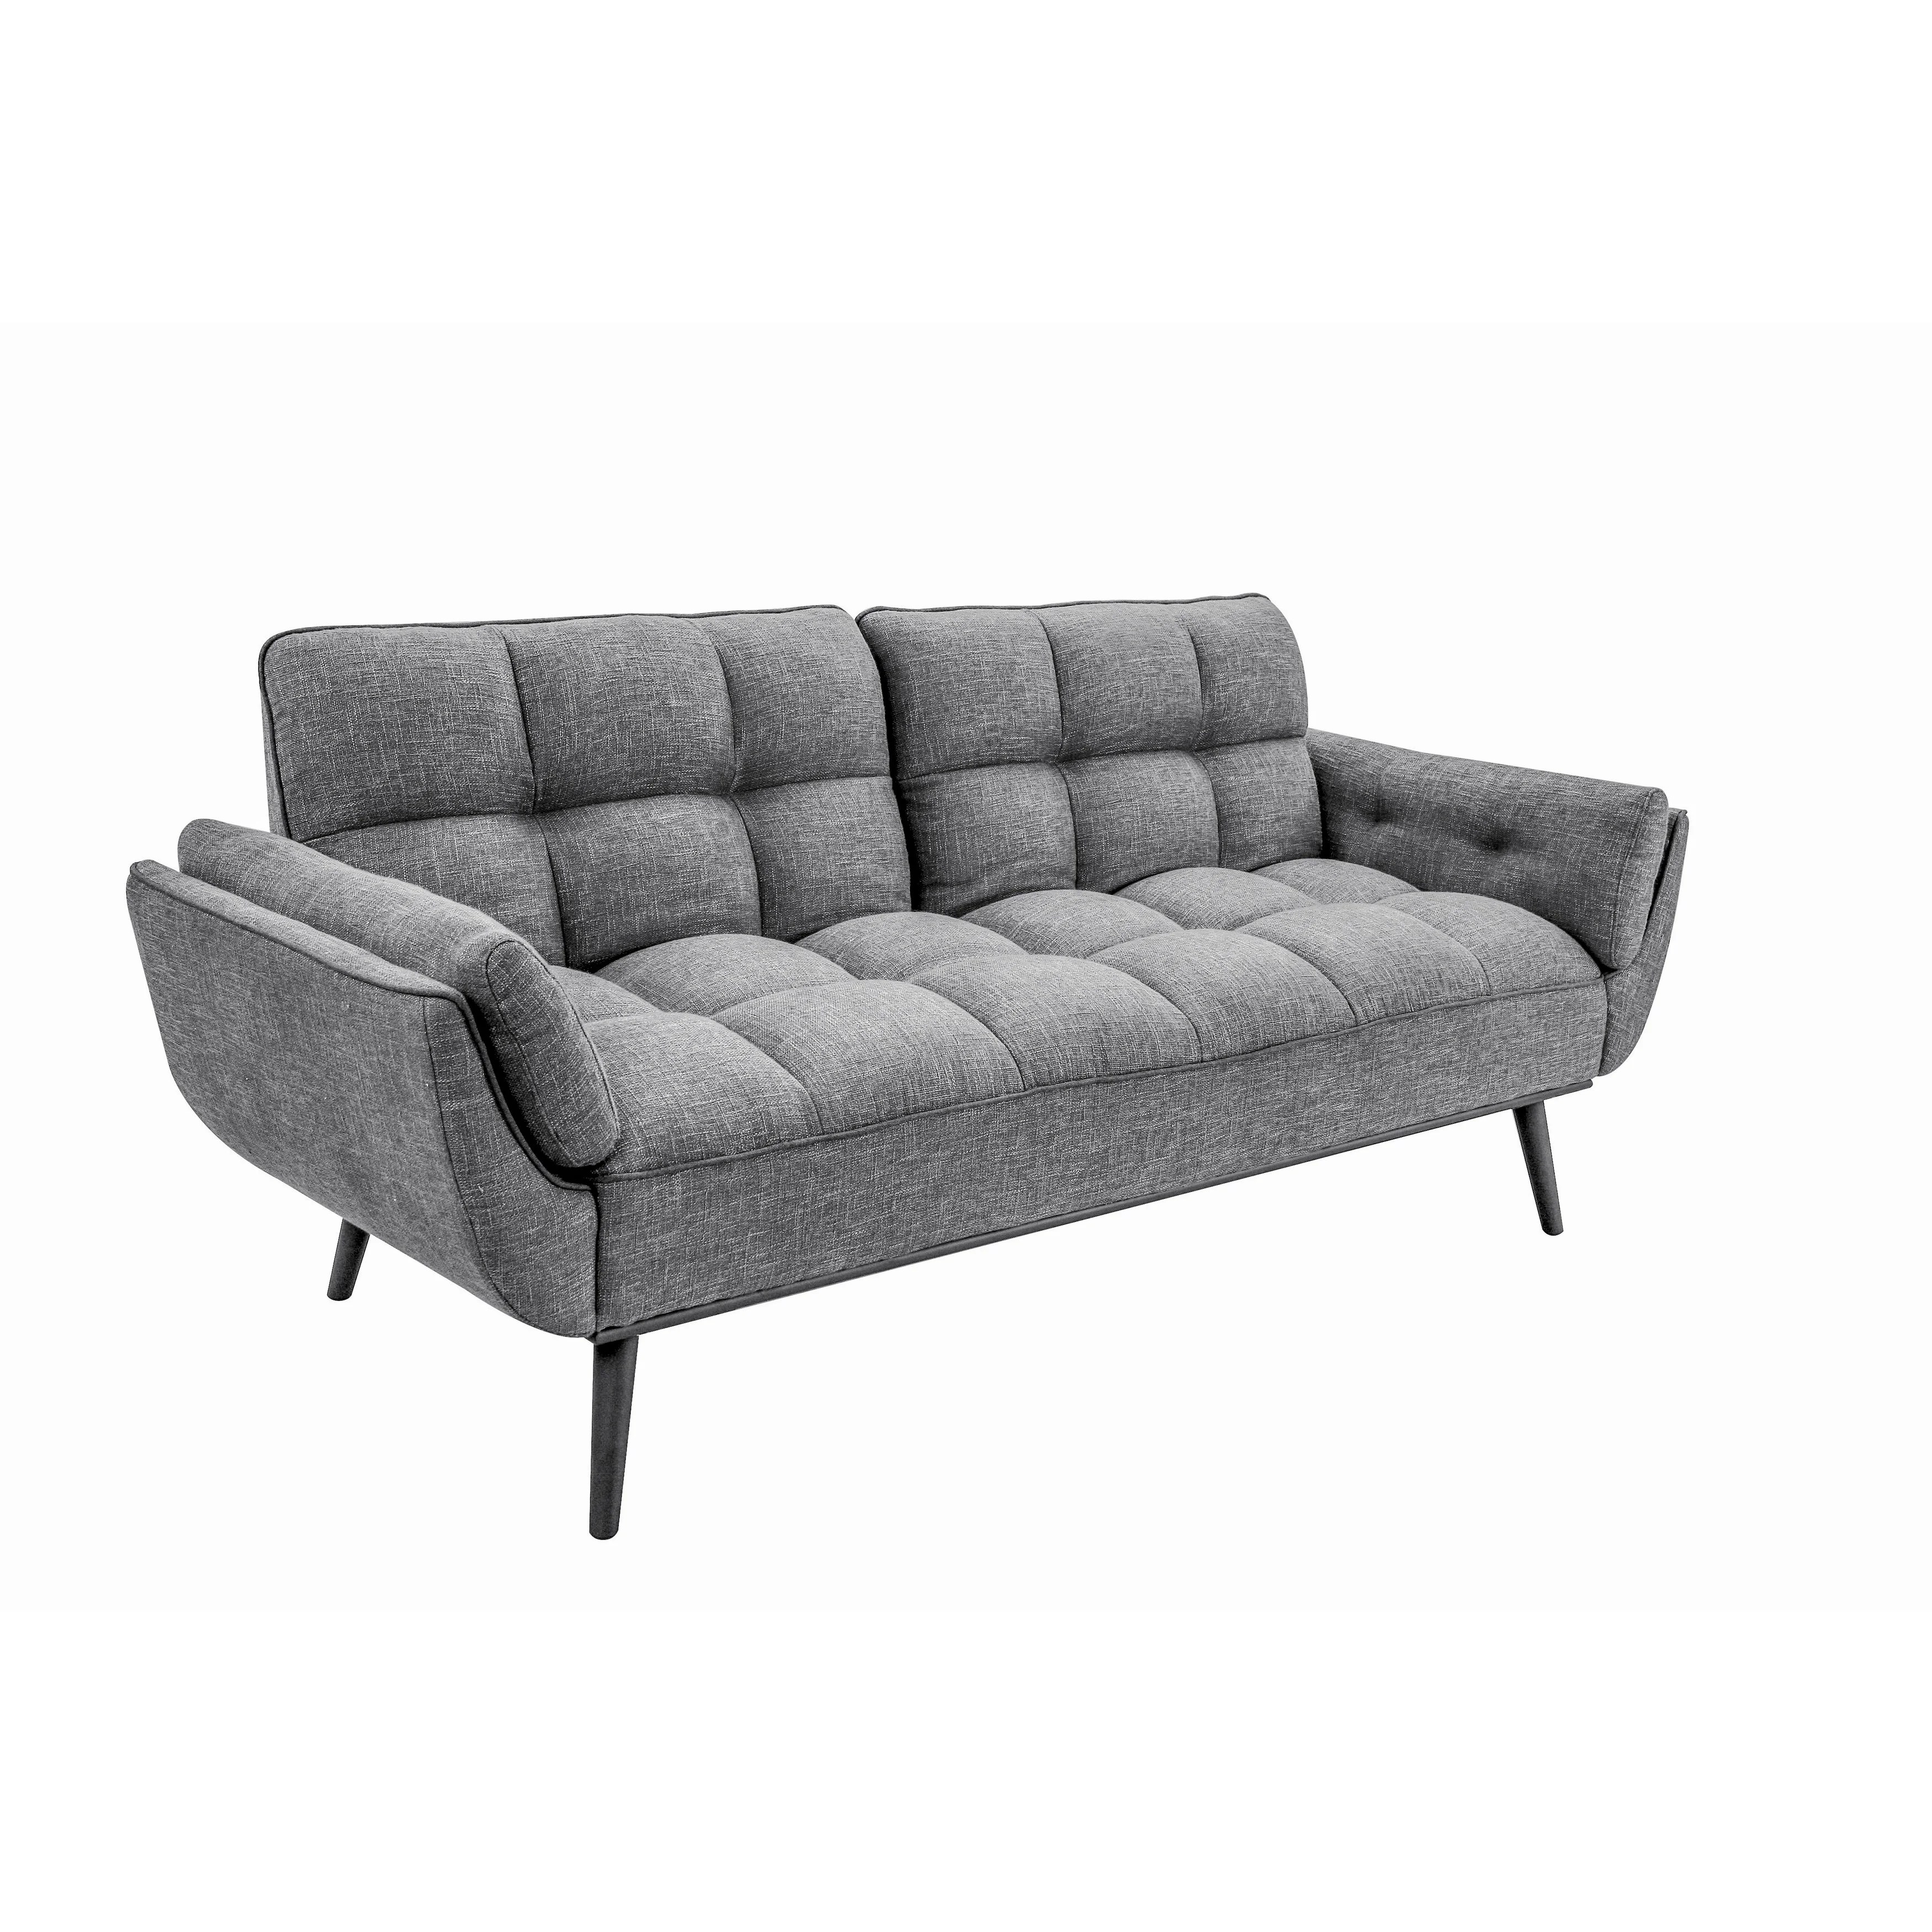 Big Sofa Landhaus Couch Relax Top Knoll Florence Knoll Relax Sitzer Sofa With